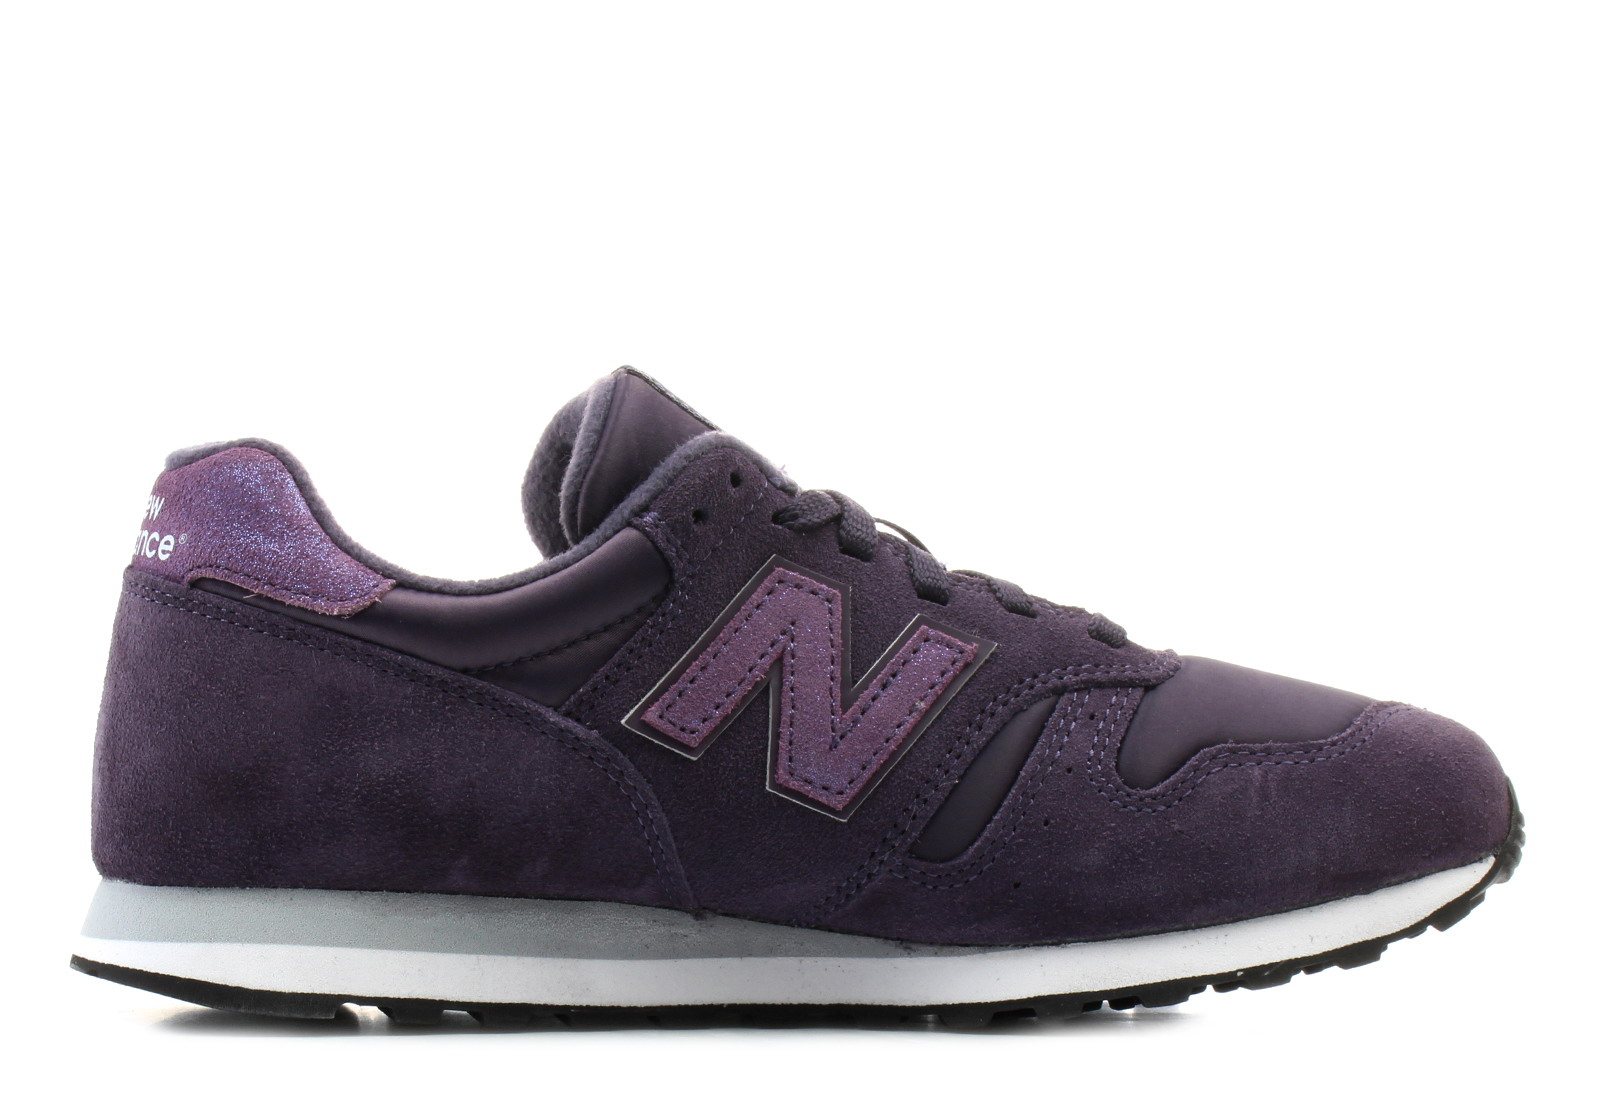 84f5417dc8 New Balance Shoes - Wl373 - WL373ESP - Online shop for sneakers ...